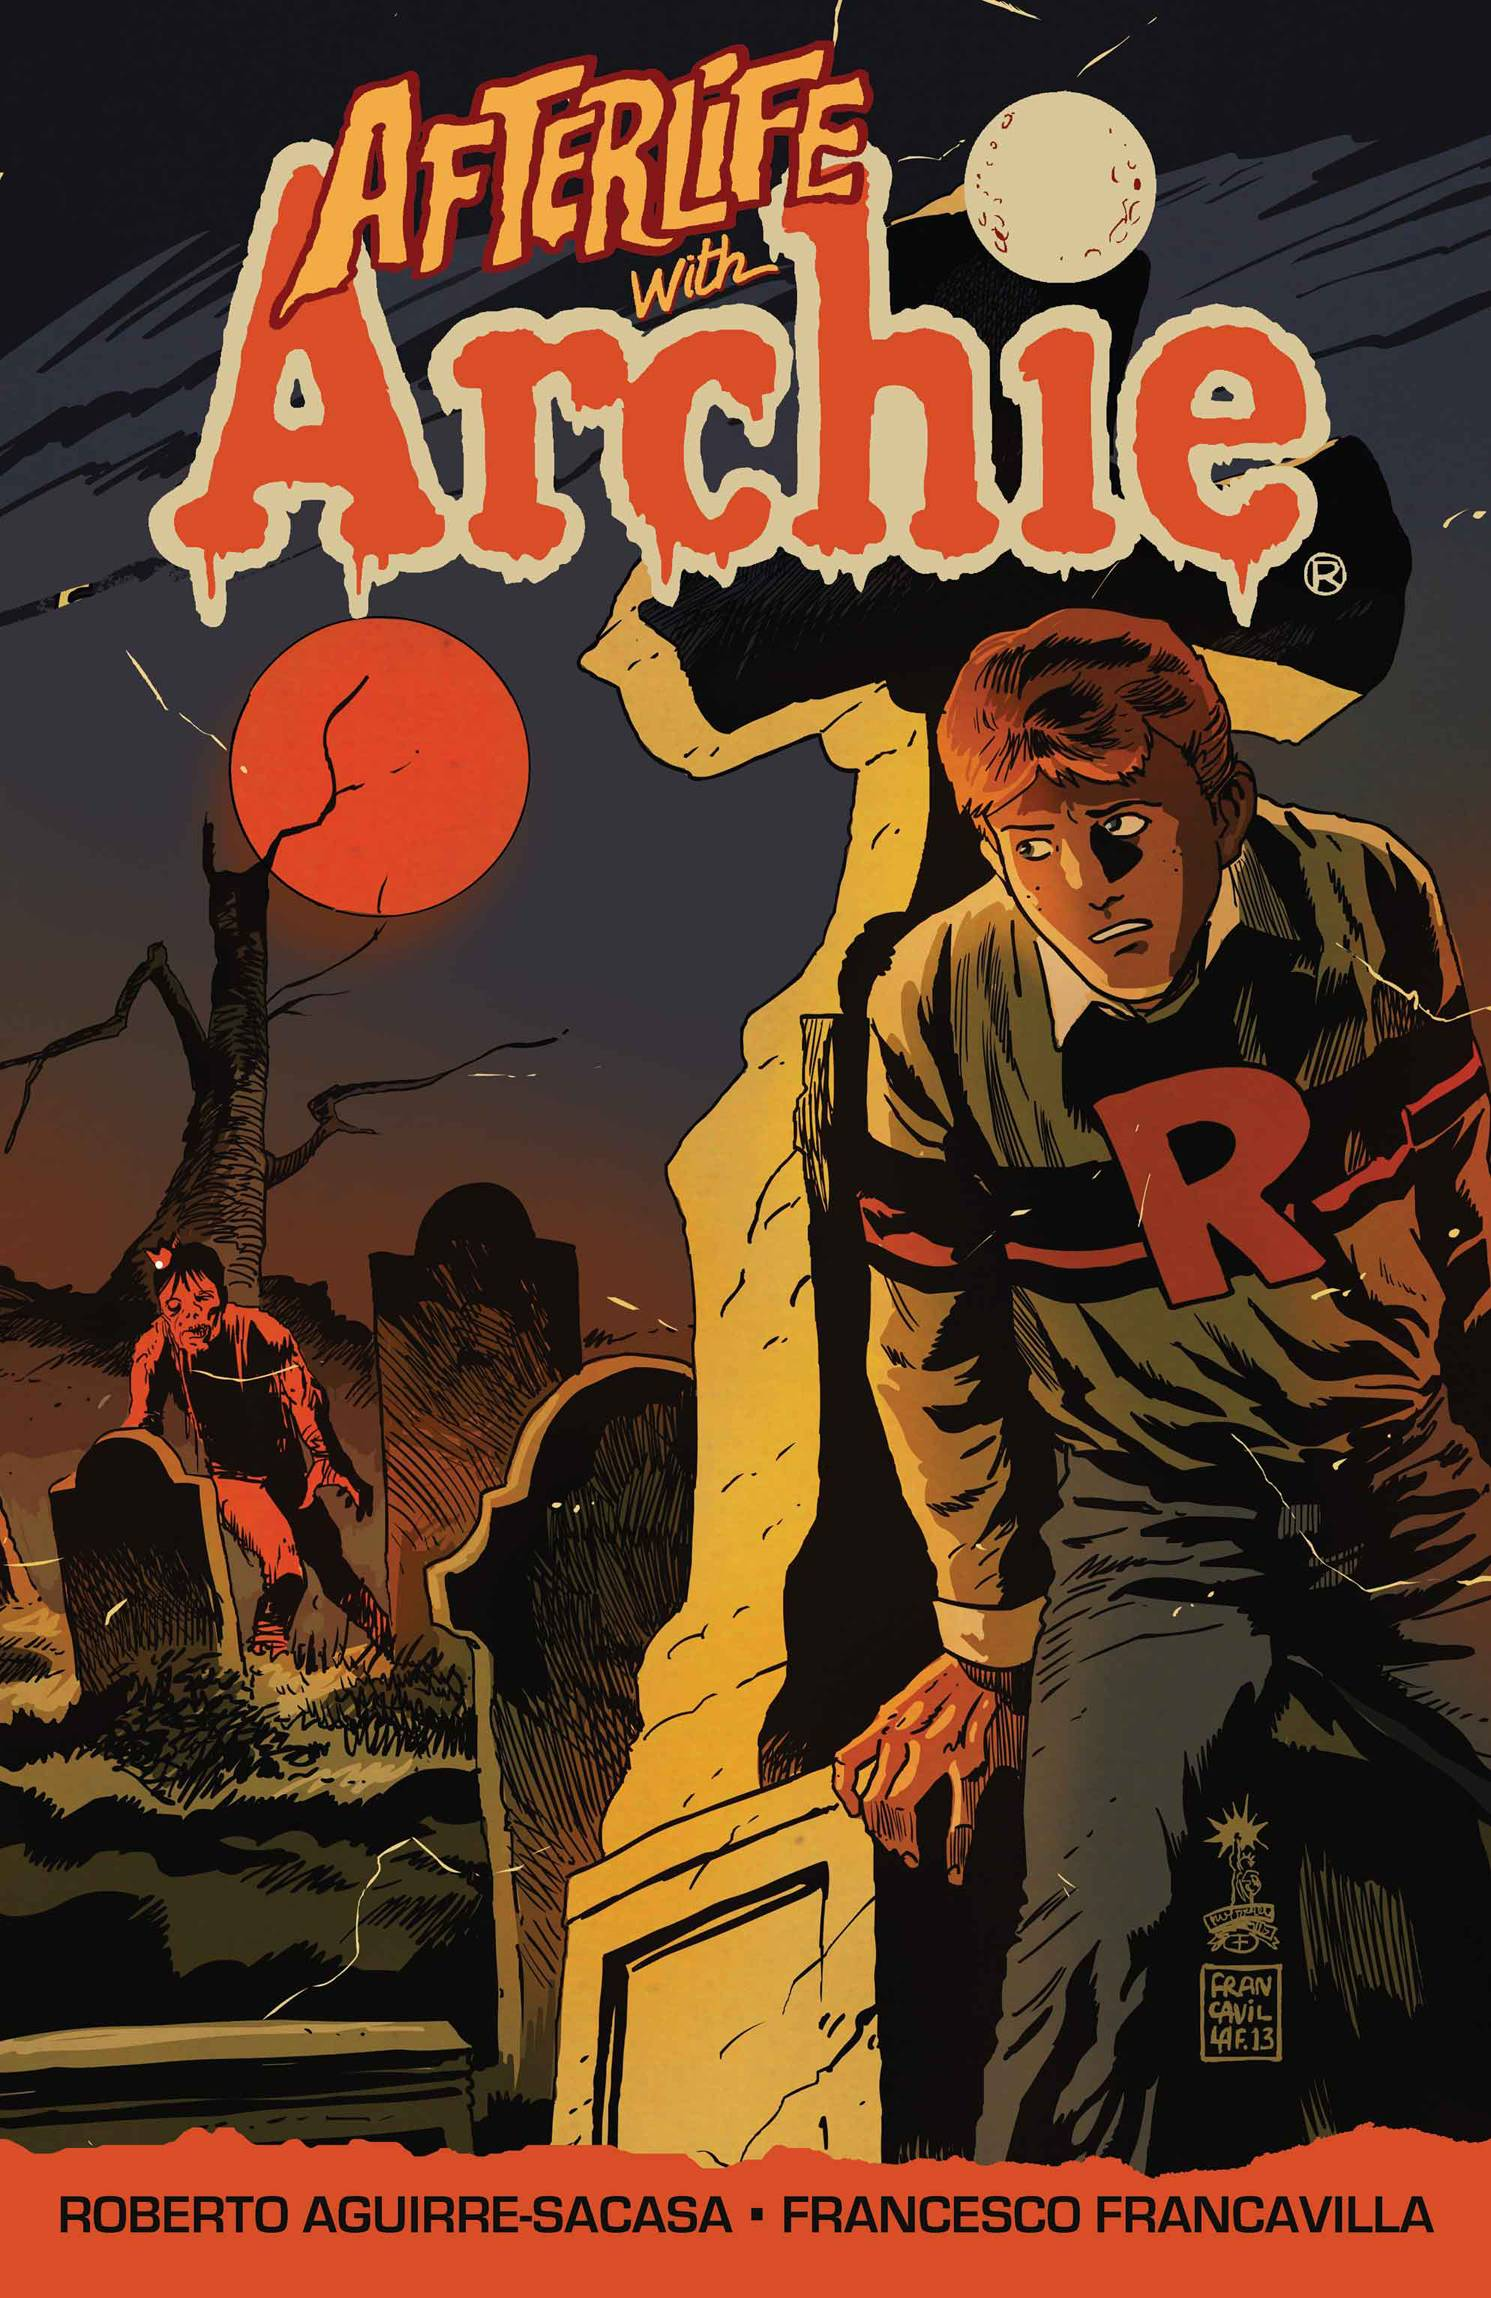 Love SABRINA THE TEENAGE WITCH? Here Are 7 Creepy Archie Horror Comics to Read_2